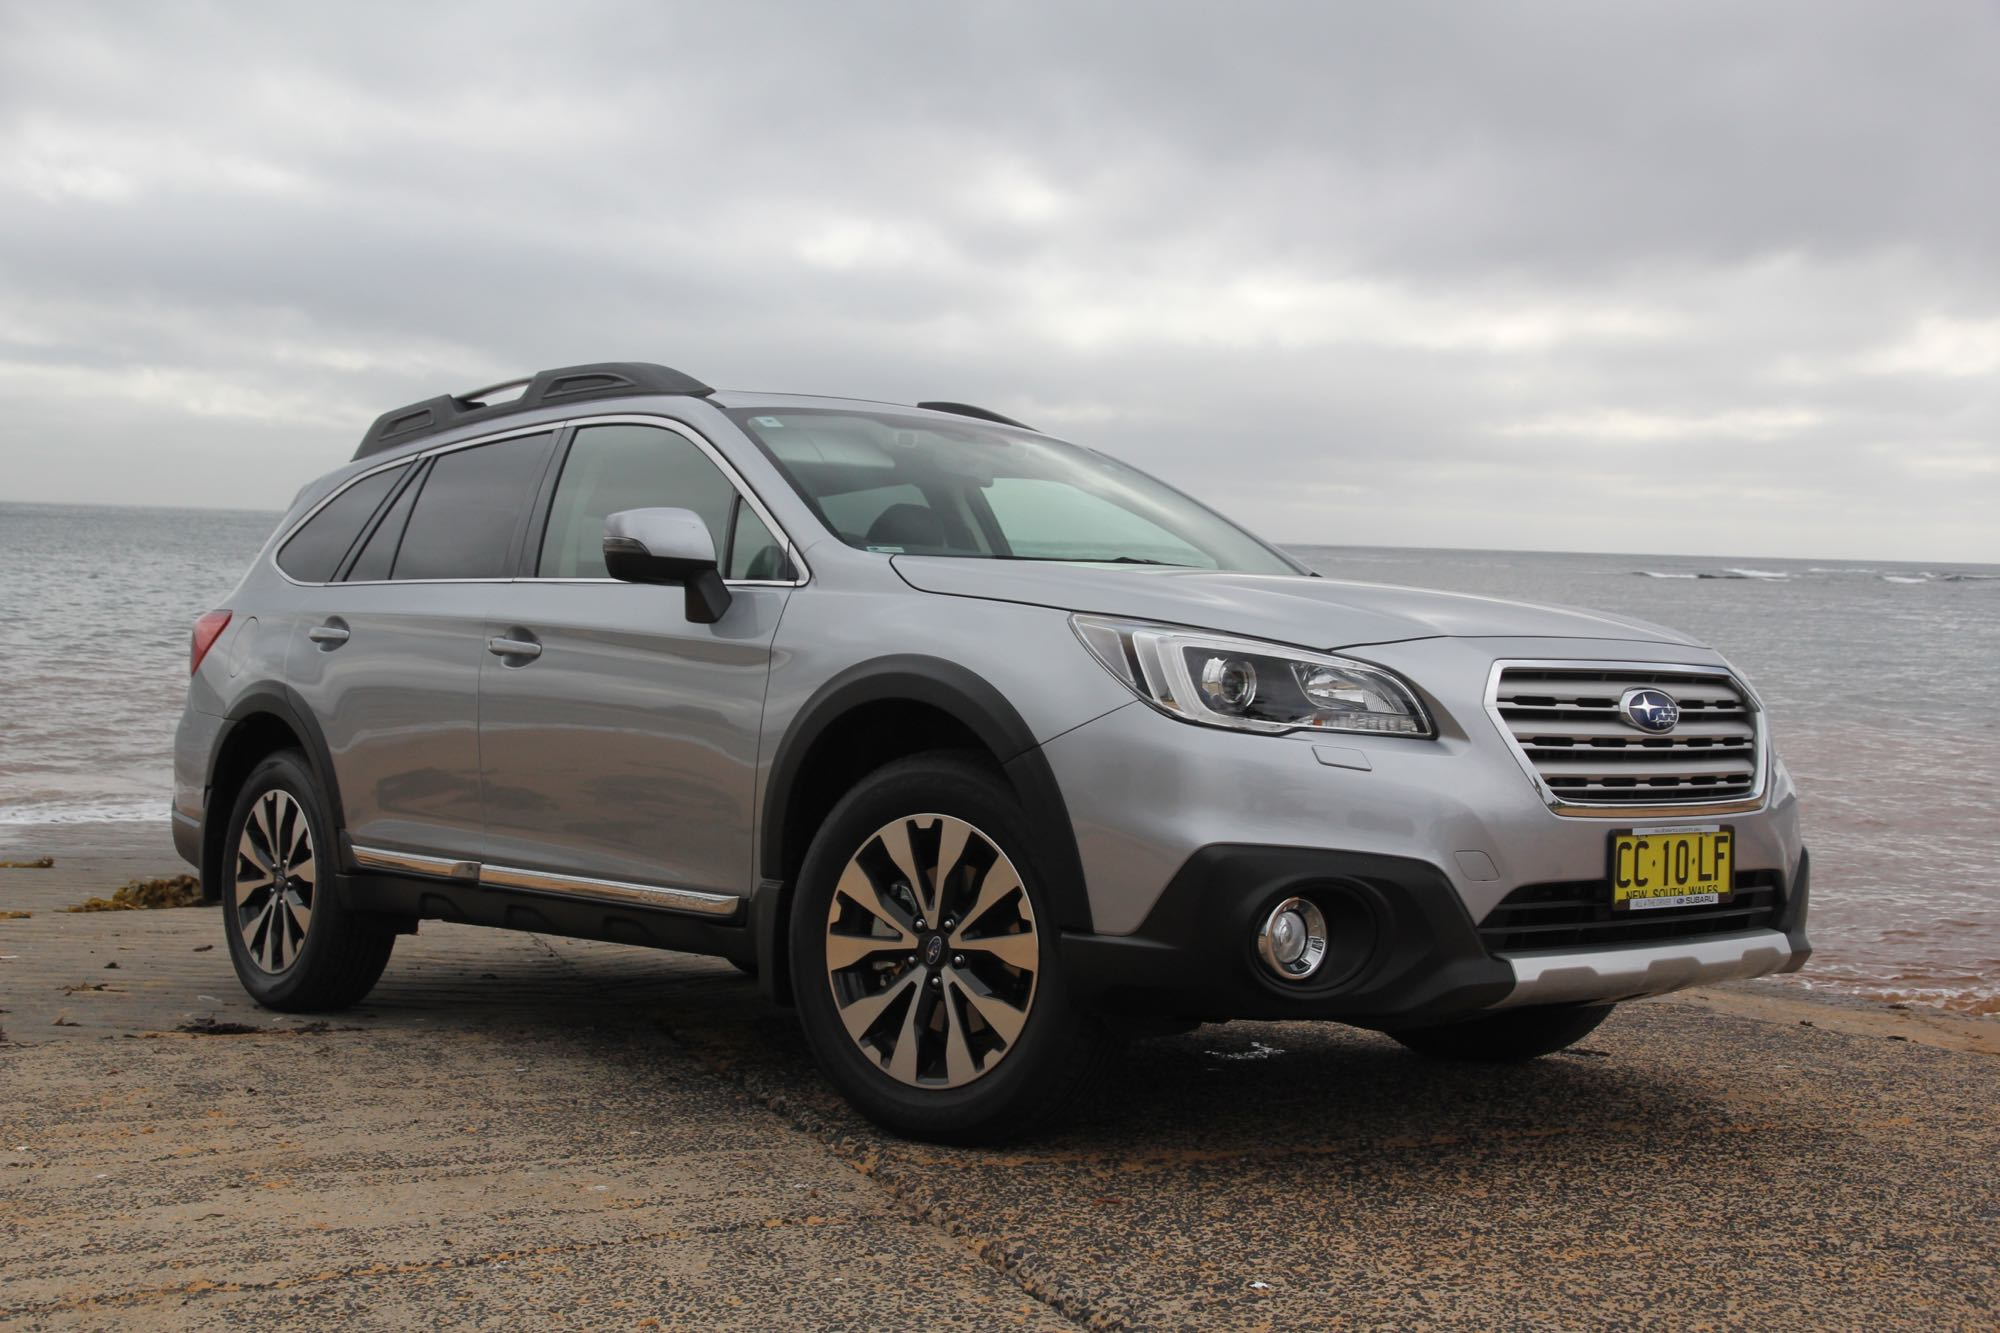 2015 Subaru Outback Price And Release Date 2015 Subaru Brz Turbo Pictures To